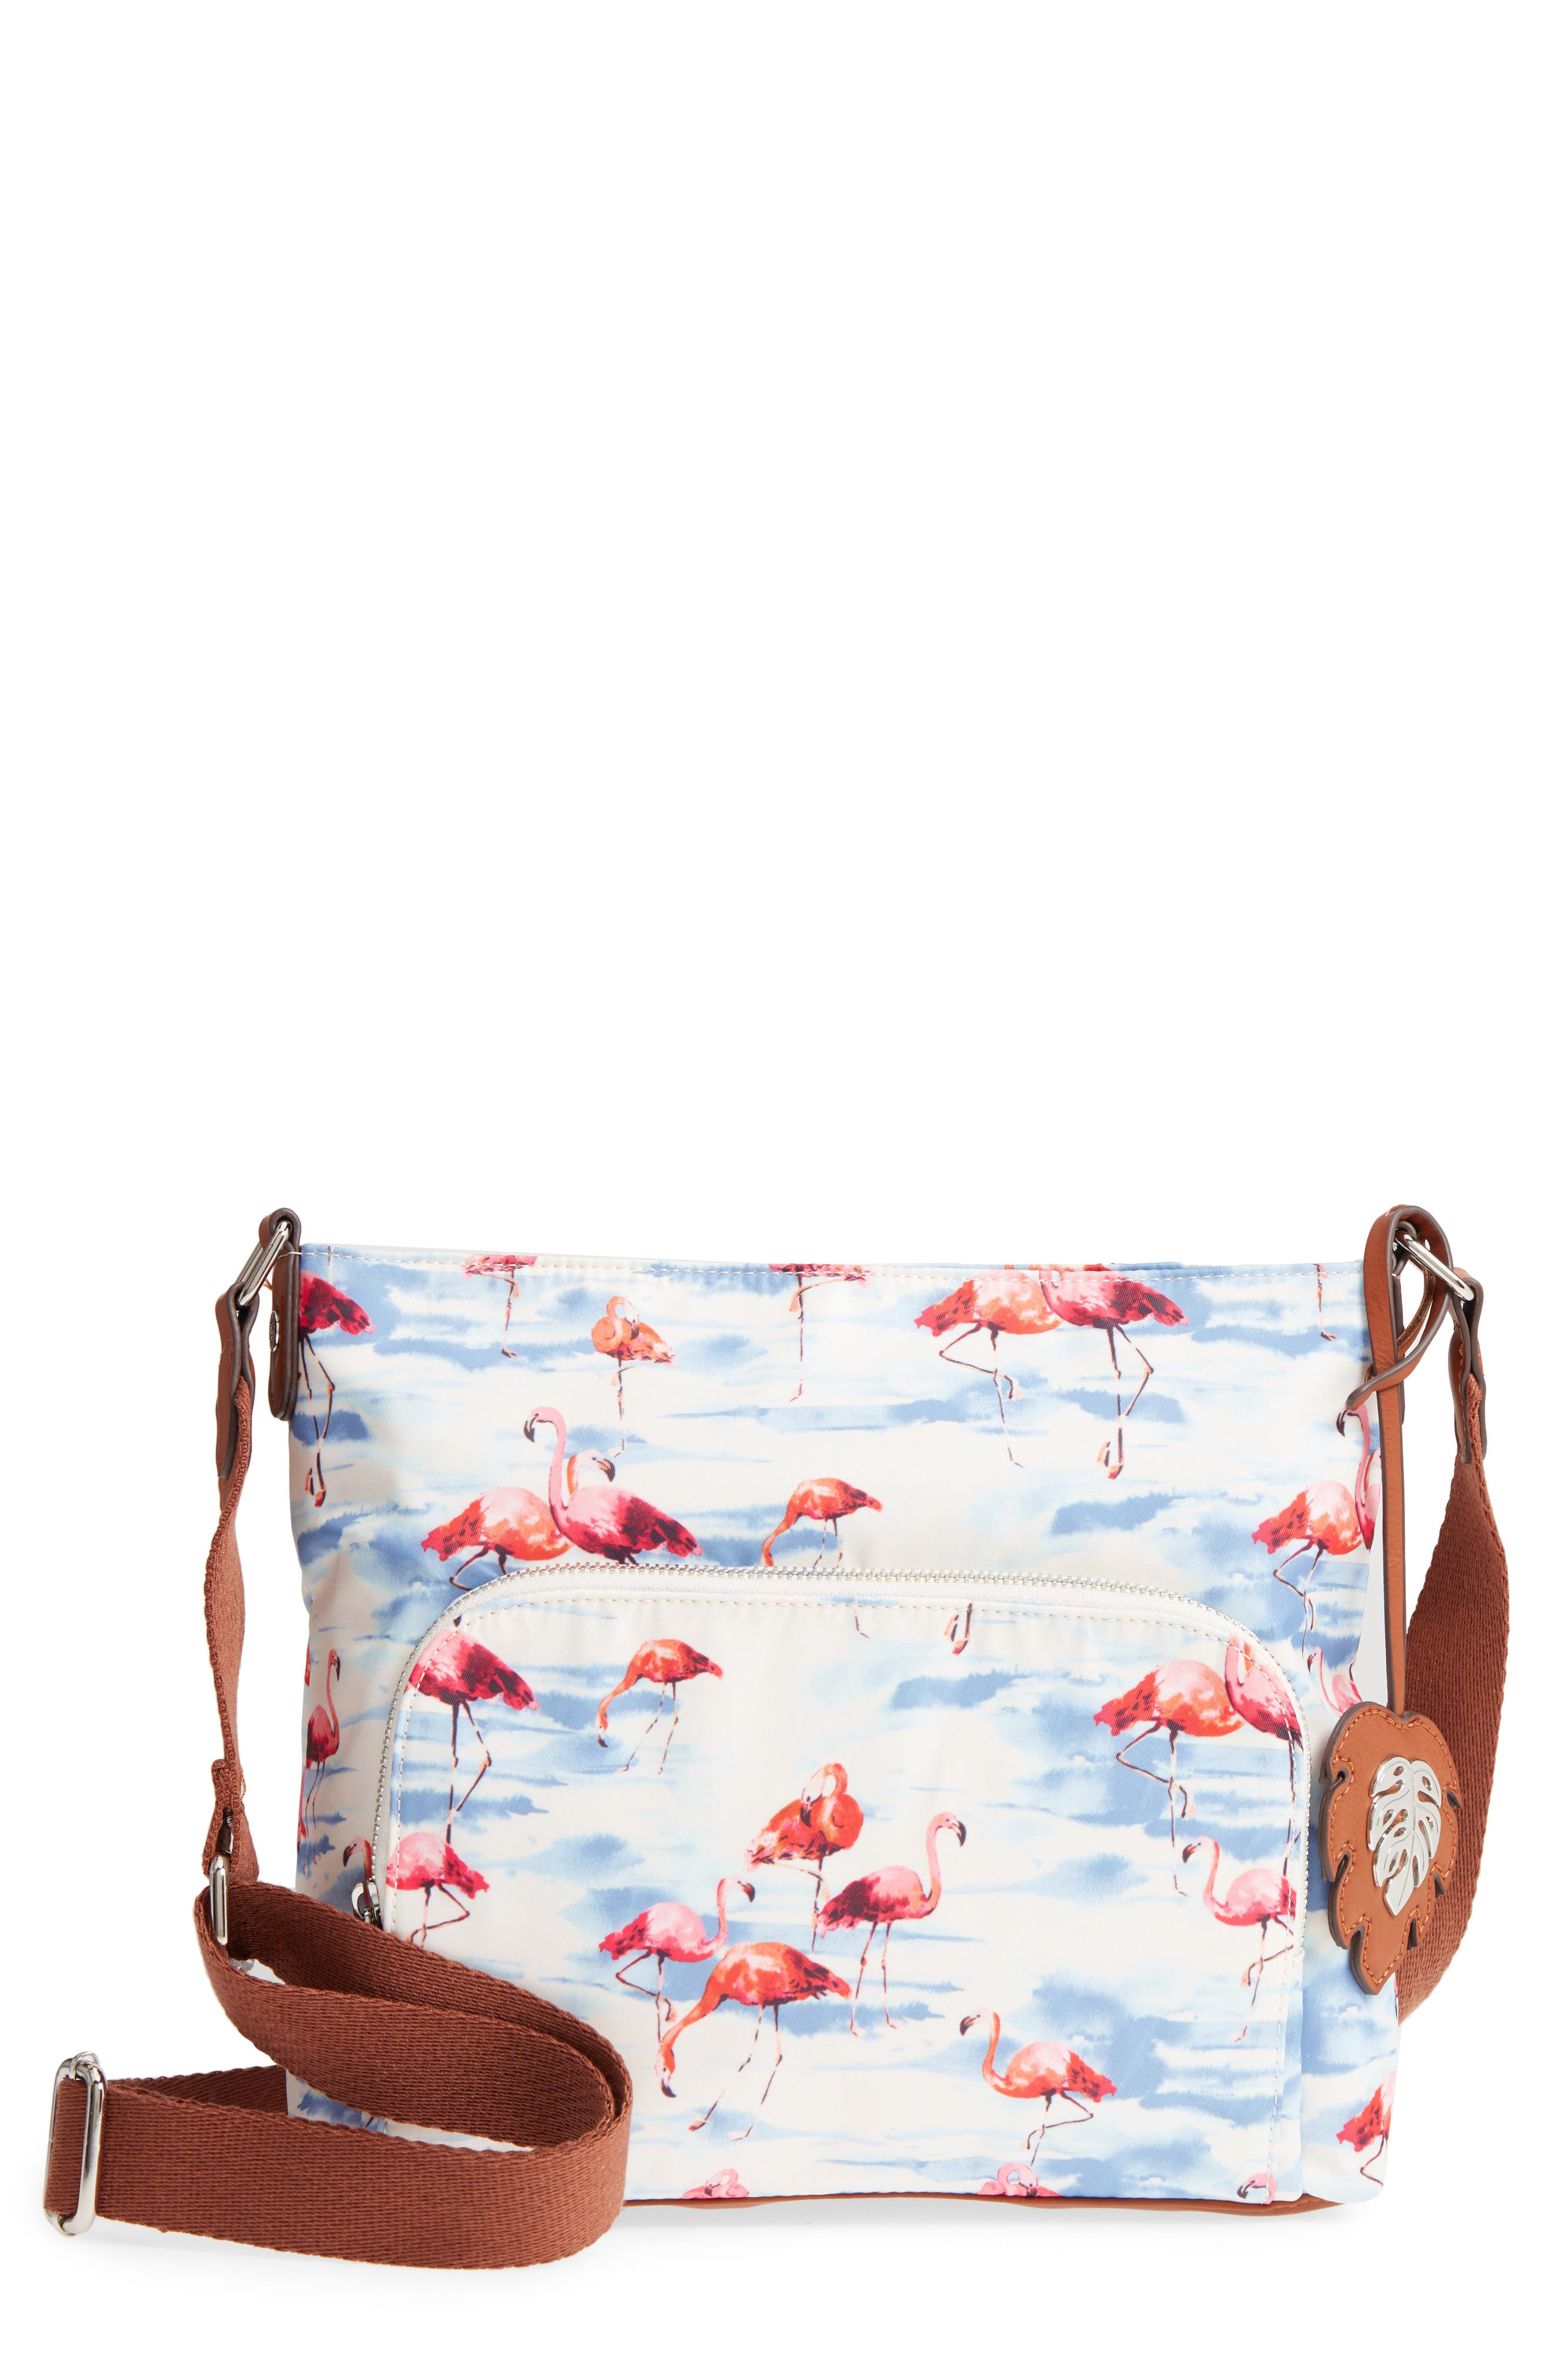 Siesta Key Waterproof Nylon Crossbody Bag,                         Main,                         color, Flamingo Squad